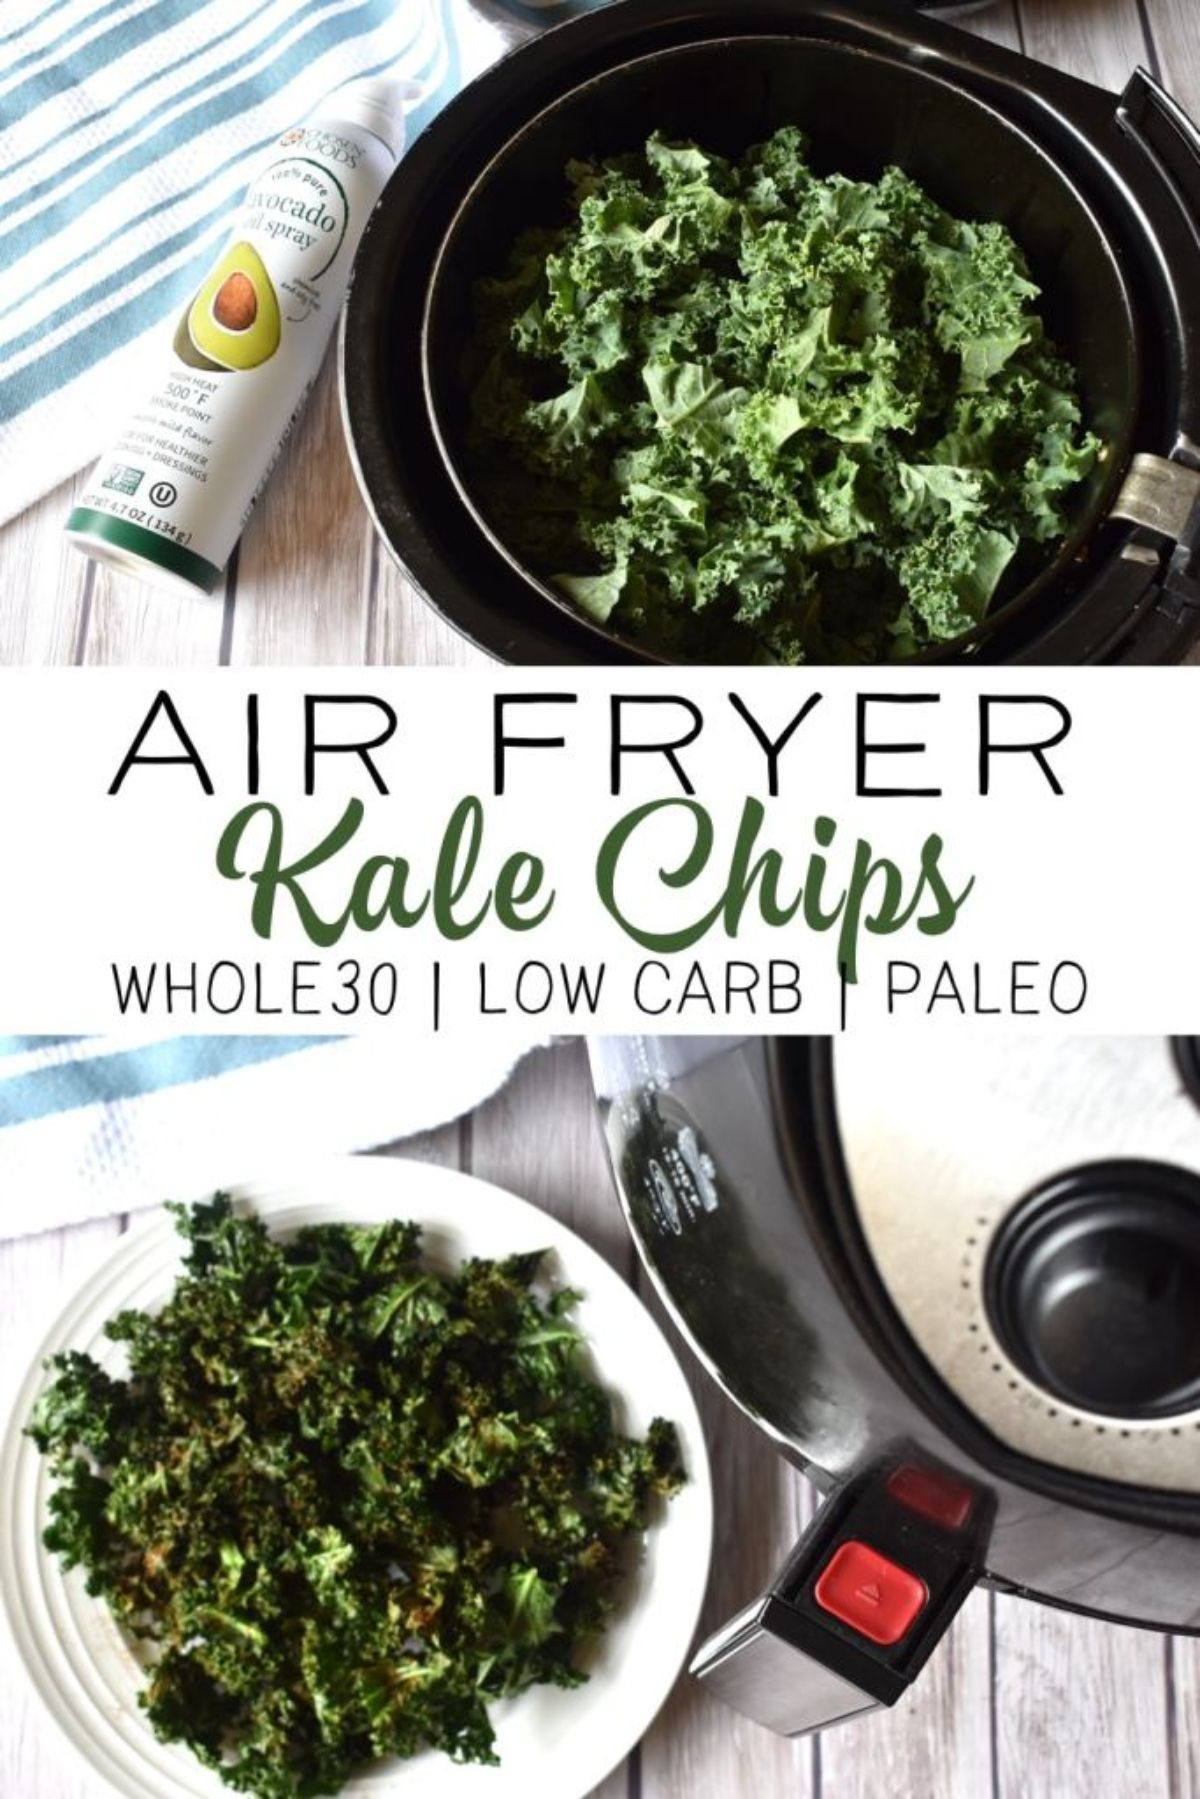 On a table is an air fryer with kale leaves ready to go in. Avocado spray is next to the fryer and there is a plate of air fried kale leaves to the bottom left